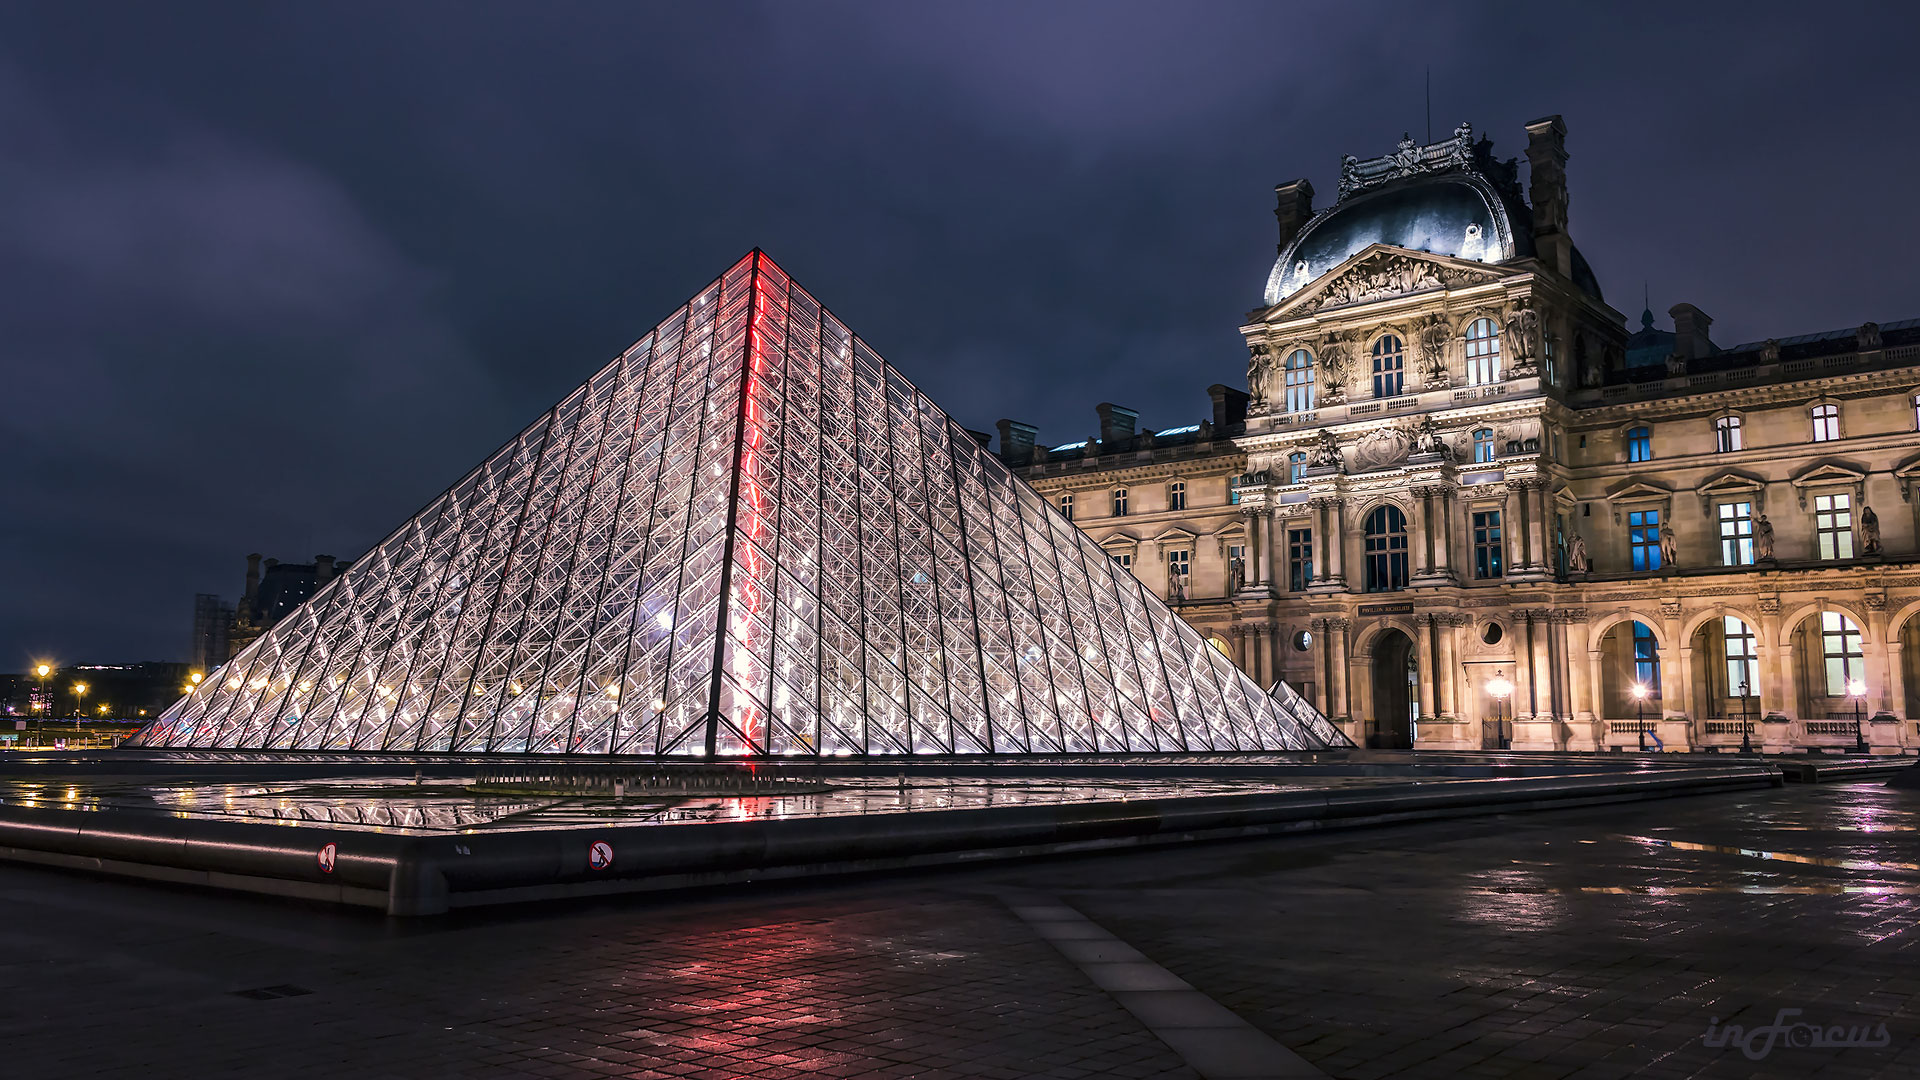 Paris-Louvre-with-pyramid